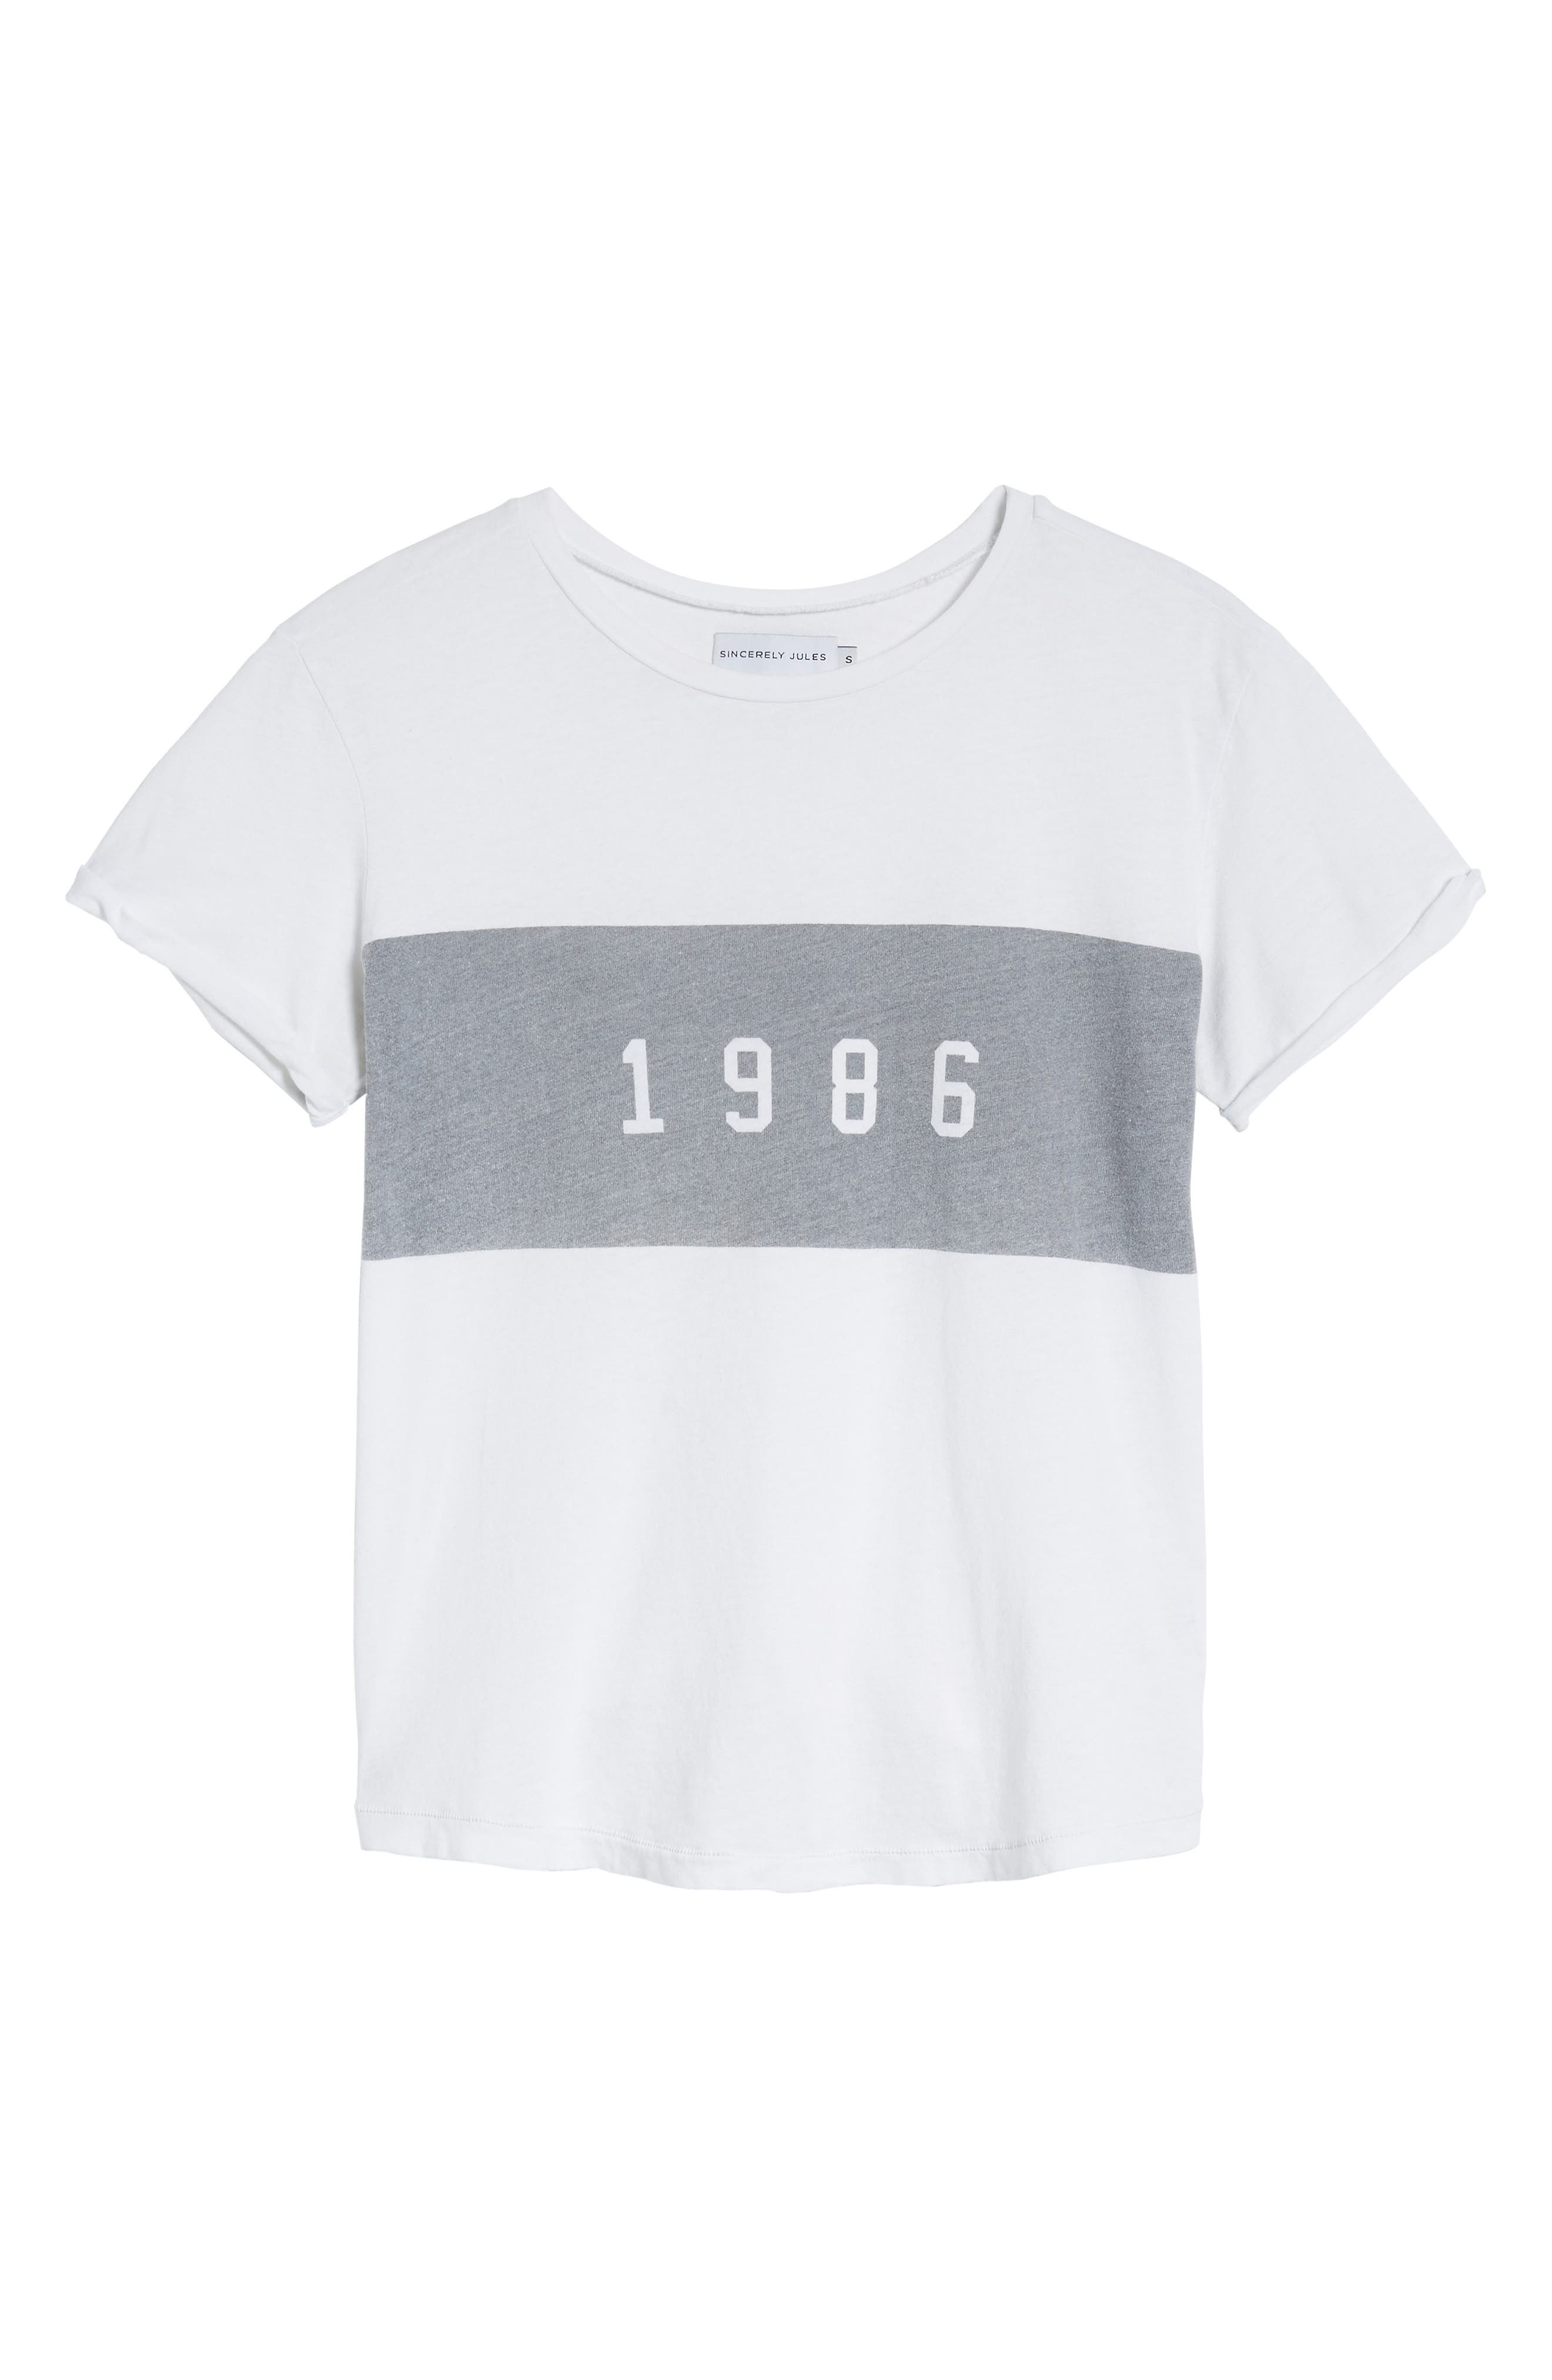 1986 Tee,                             Alternate thumbnail 6, color,                             100